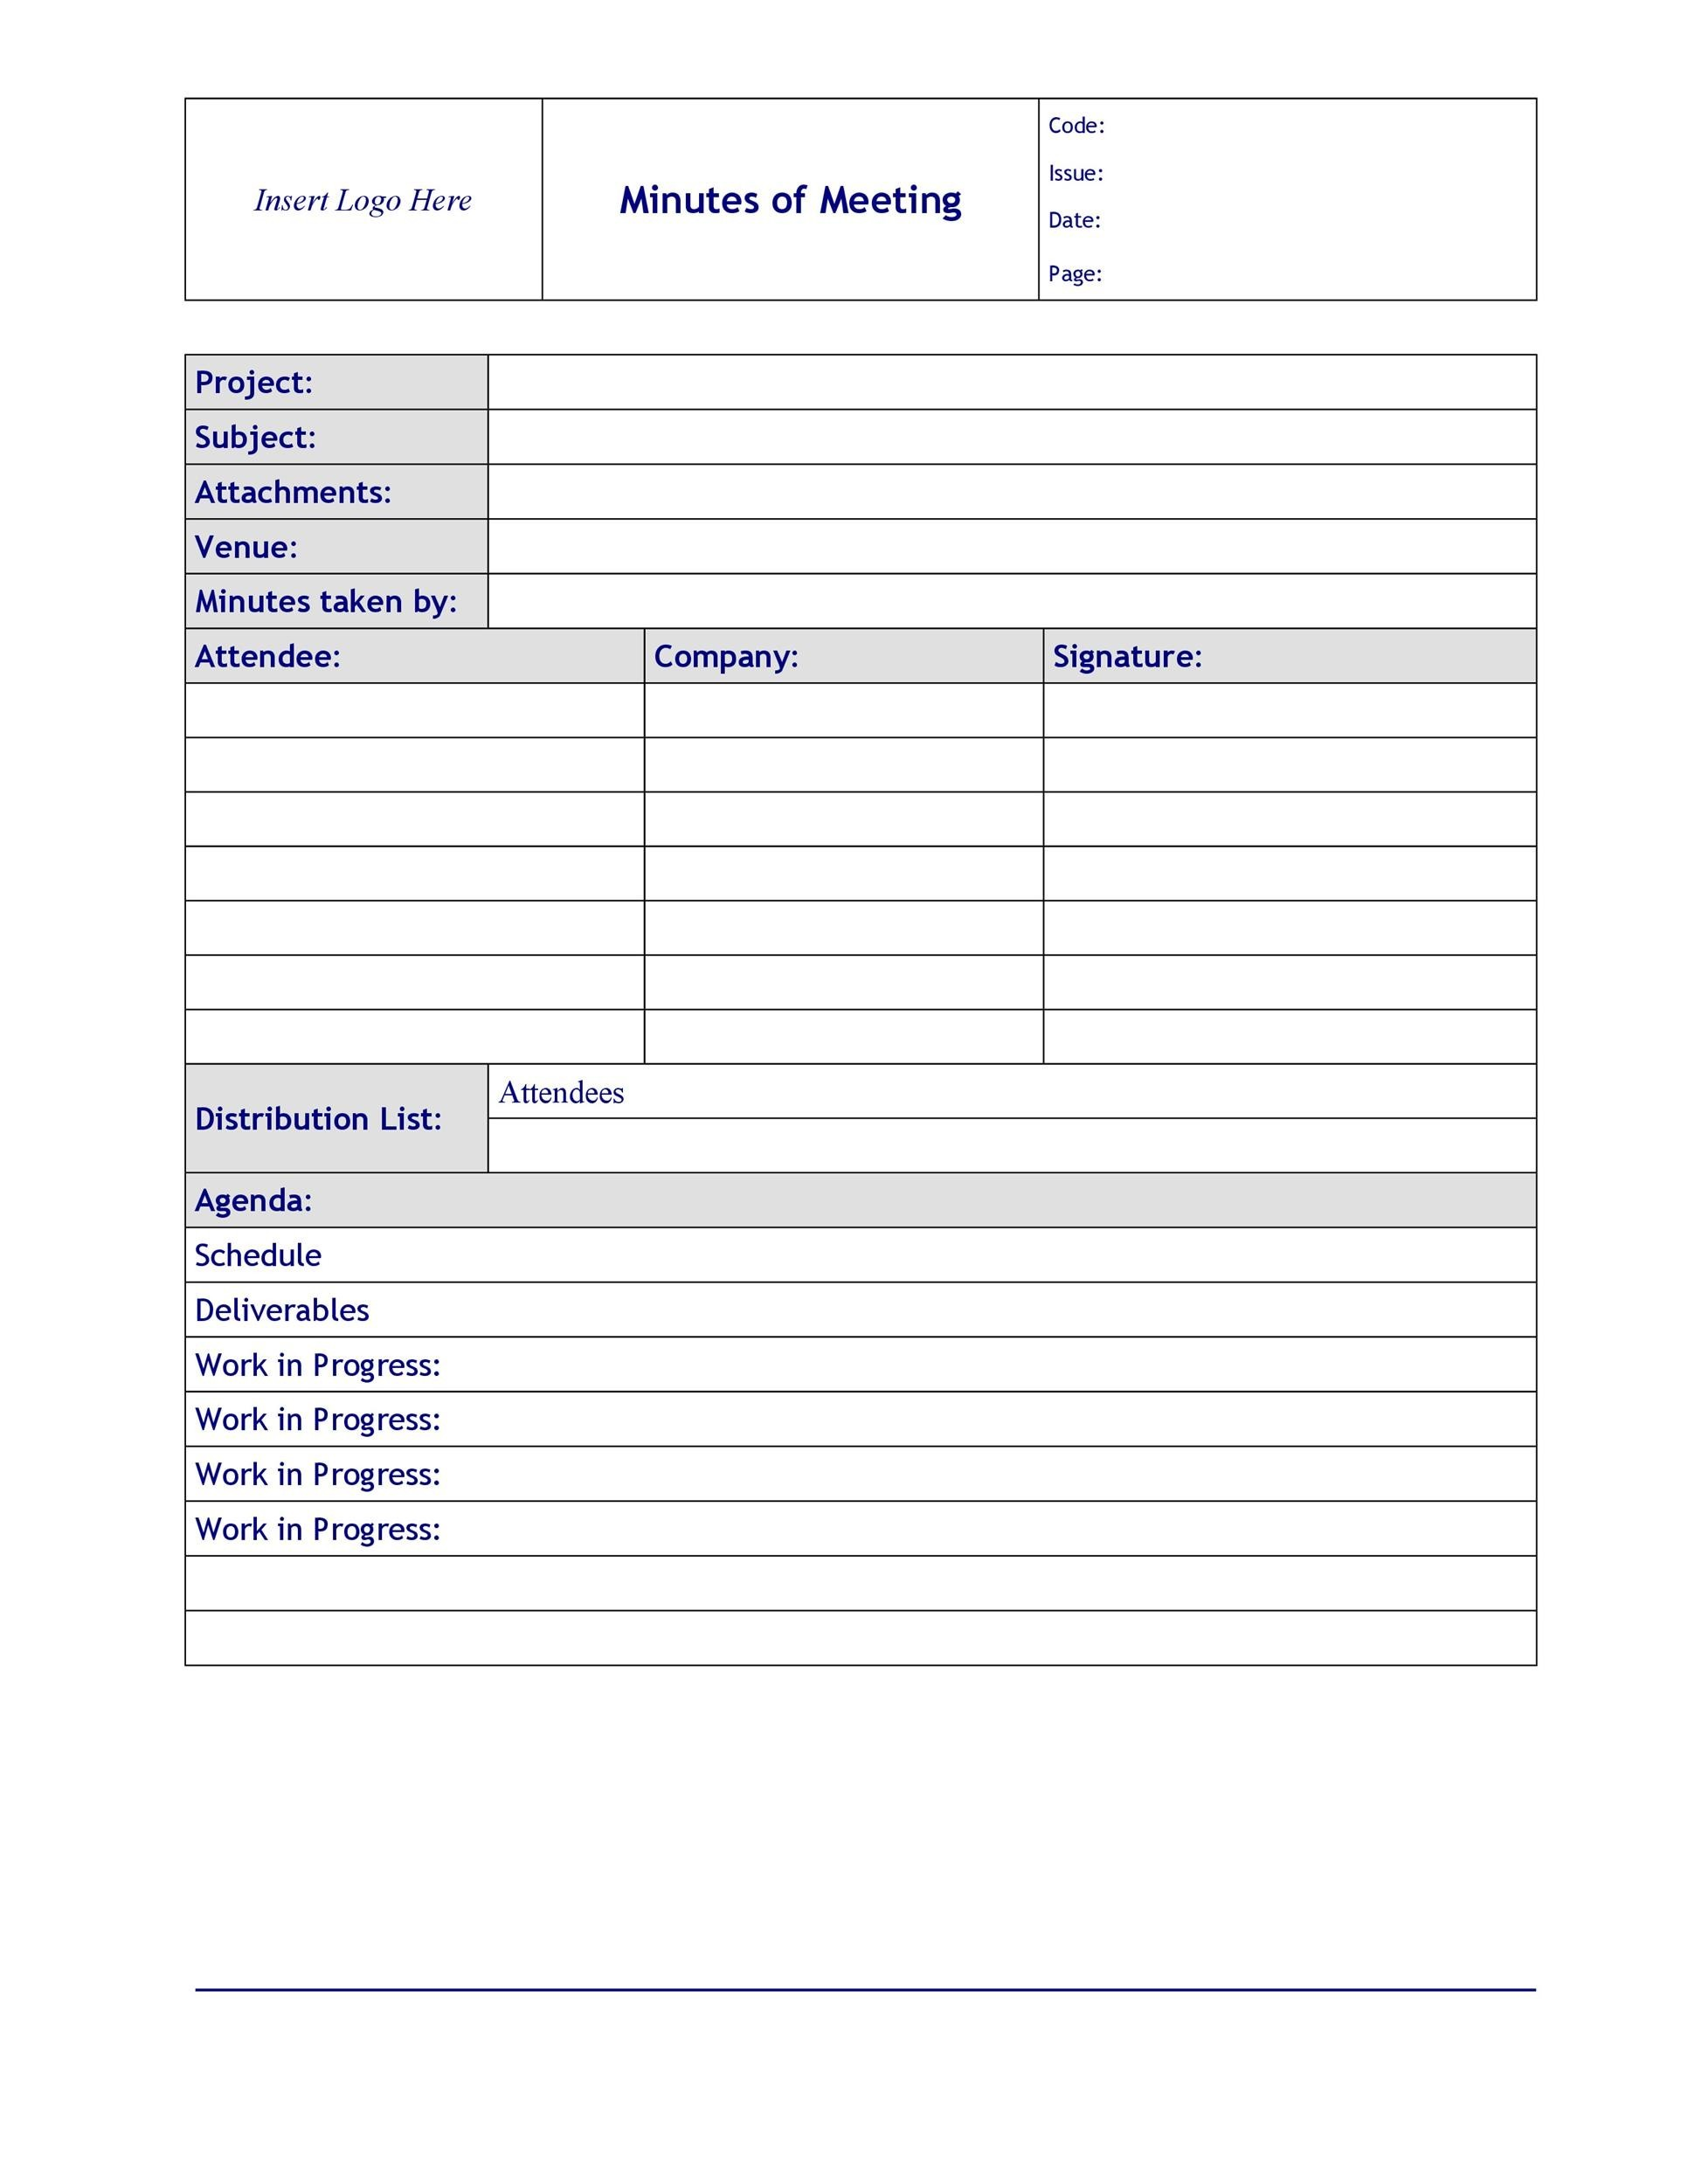 20 Handy Meeting Minutes  Meeting Notes Templates - minutes of meeting template free download